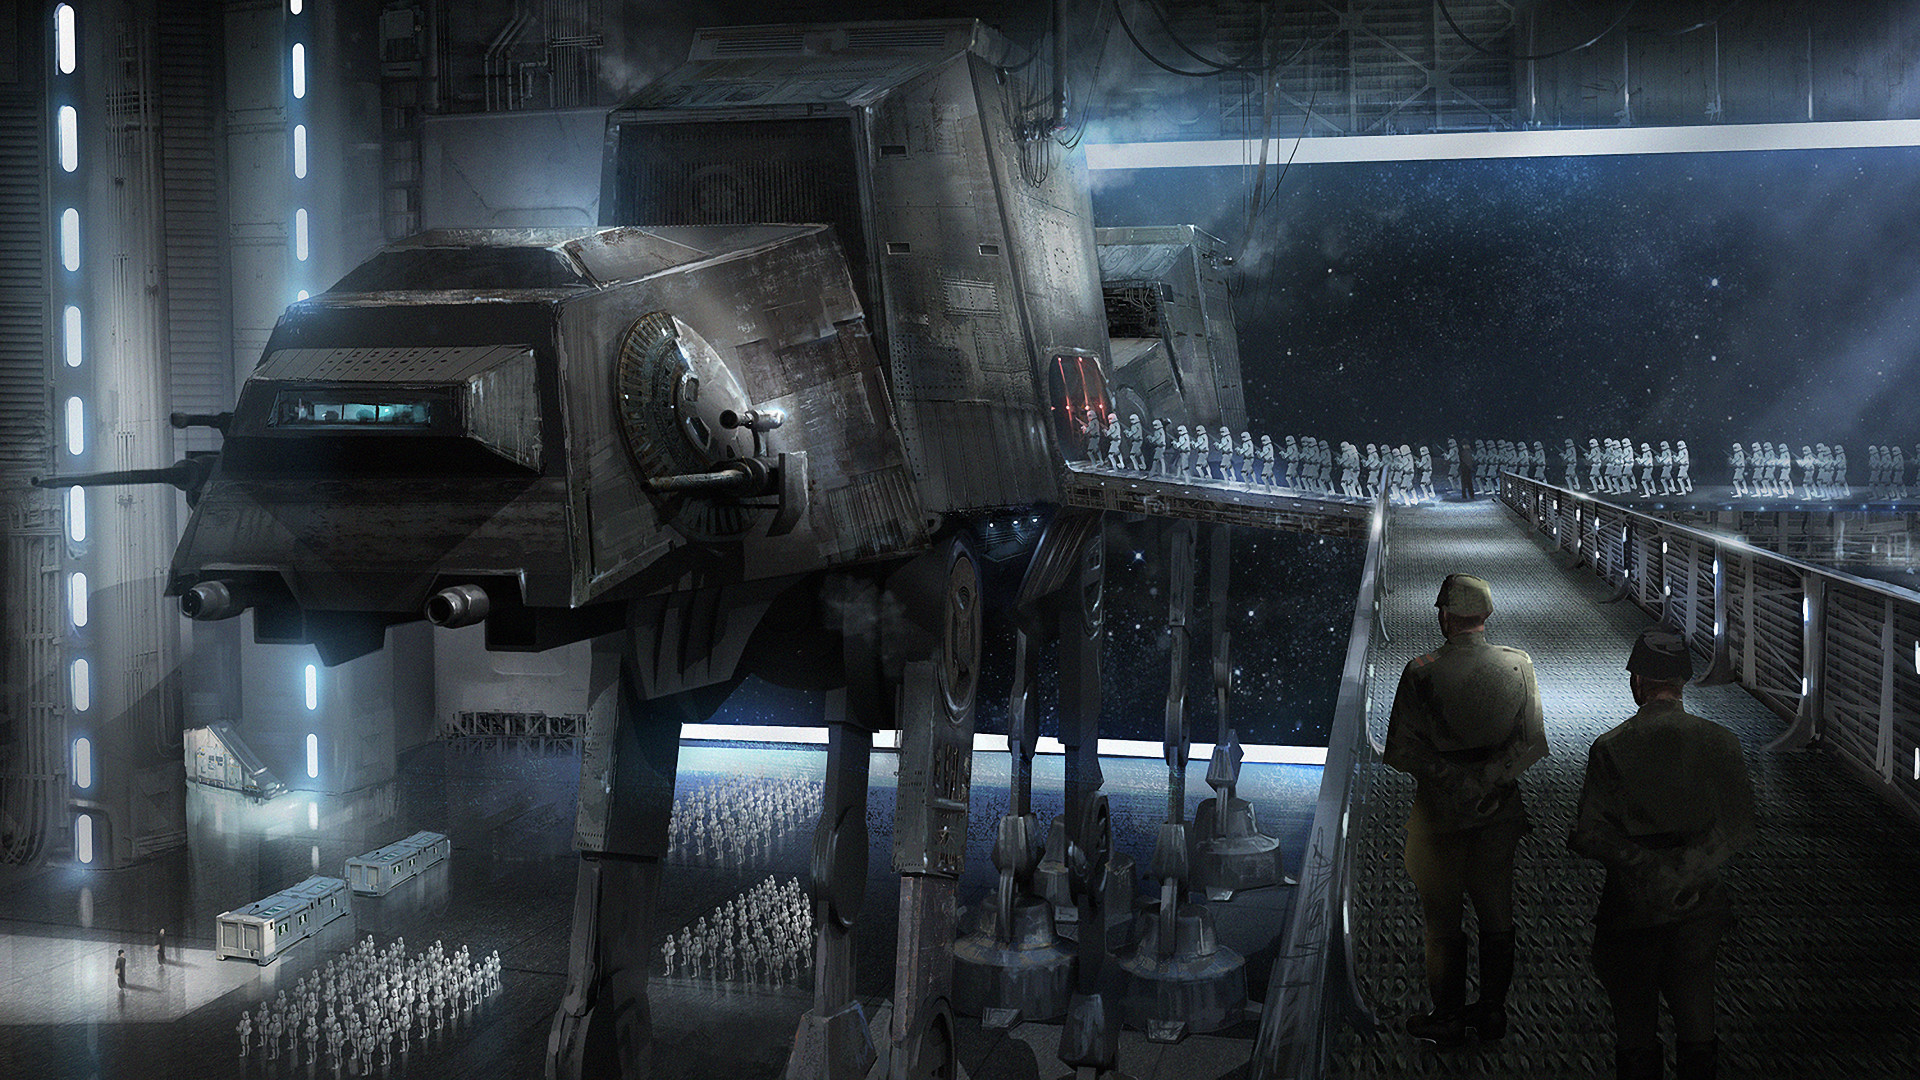 Star Wars Imperial Wallpaper Hd 76 Images